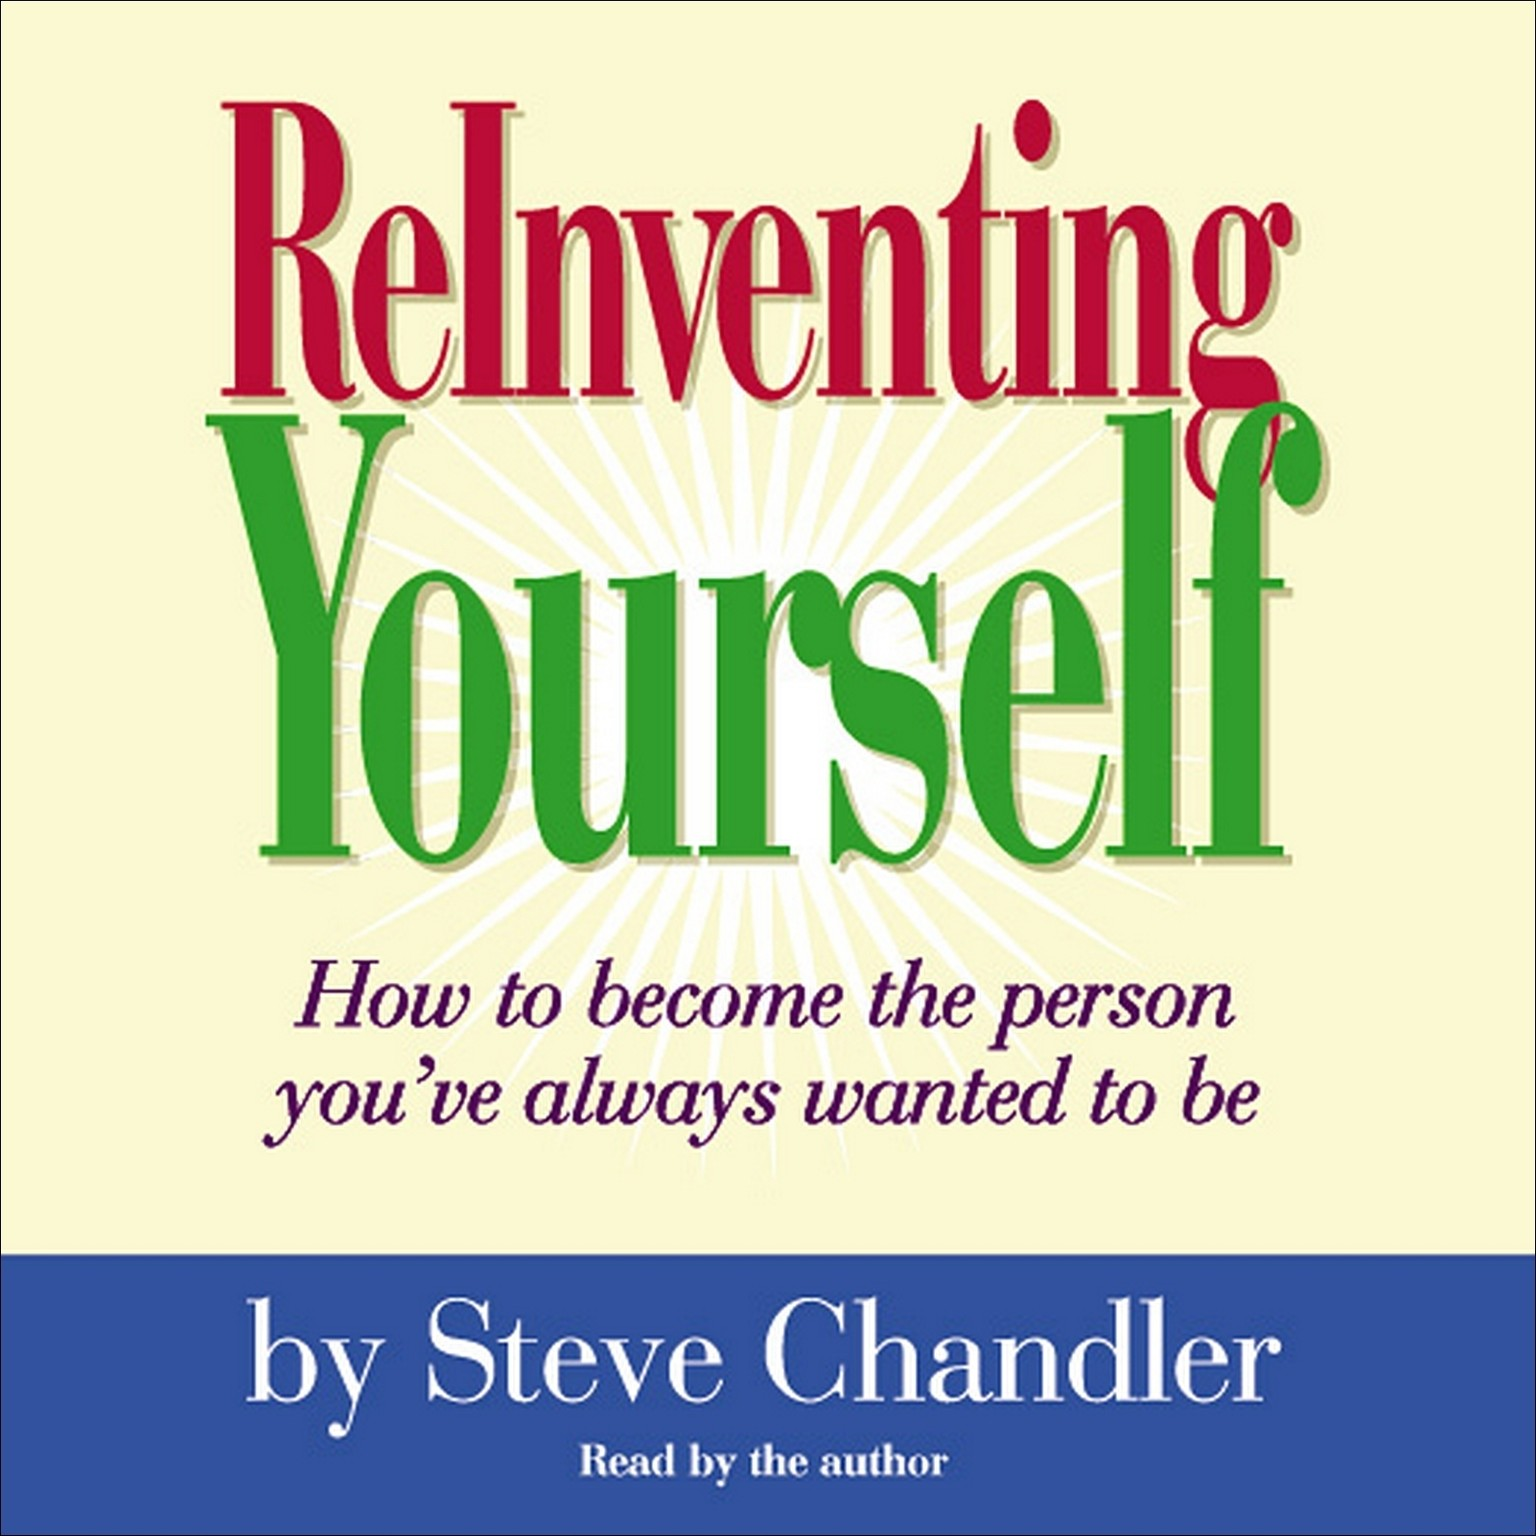 Printable ReInventing Yourself: How To Become the Person You Always Wanted to Be Audiobook Cover Art